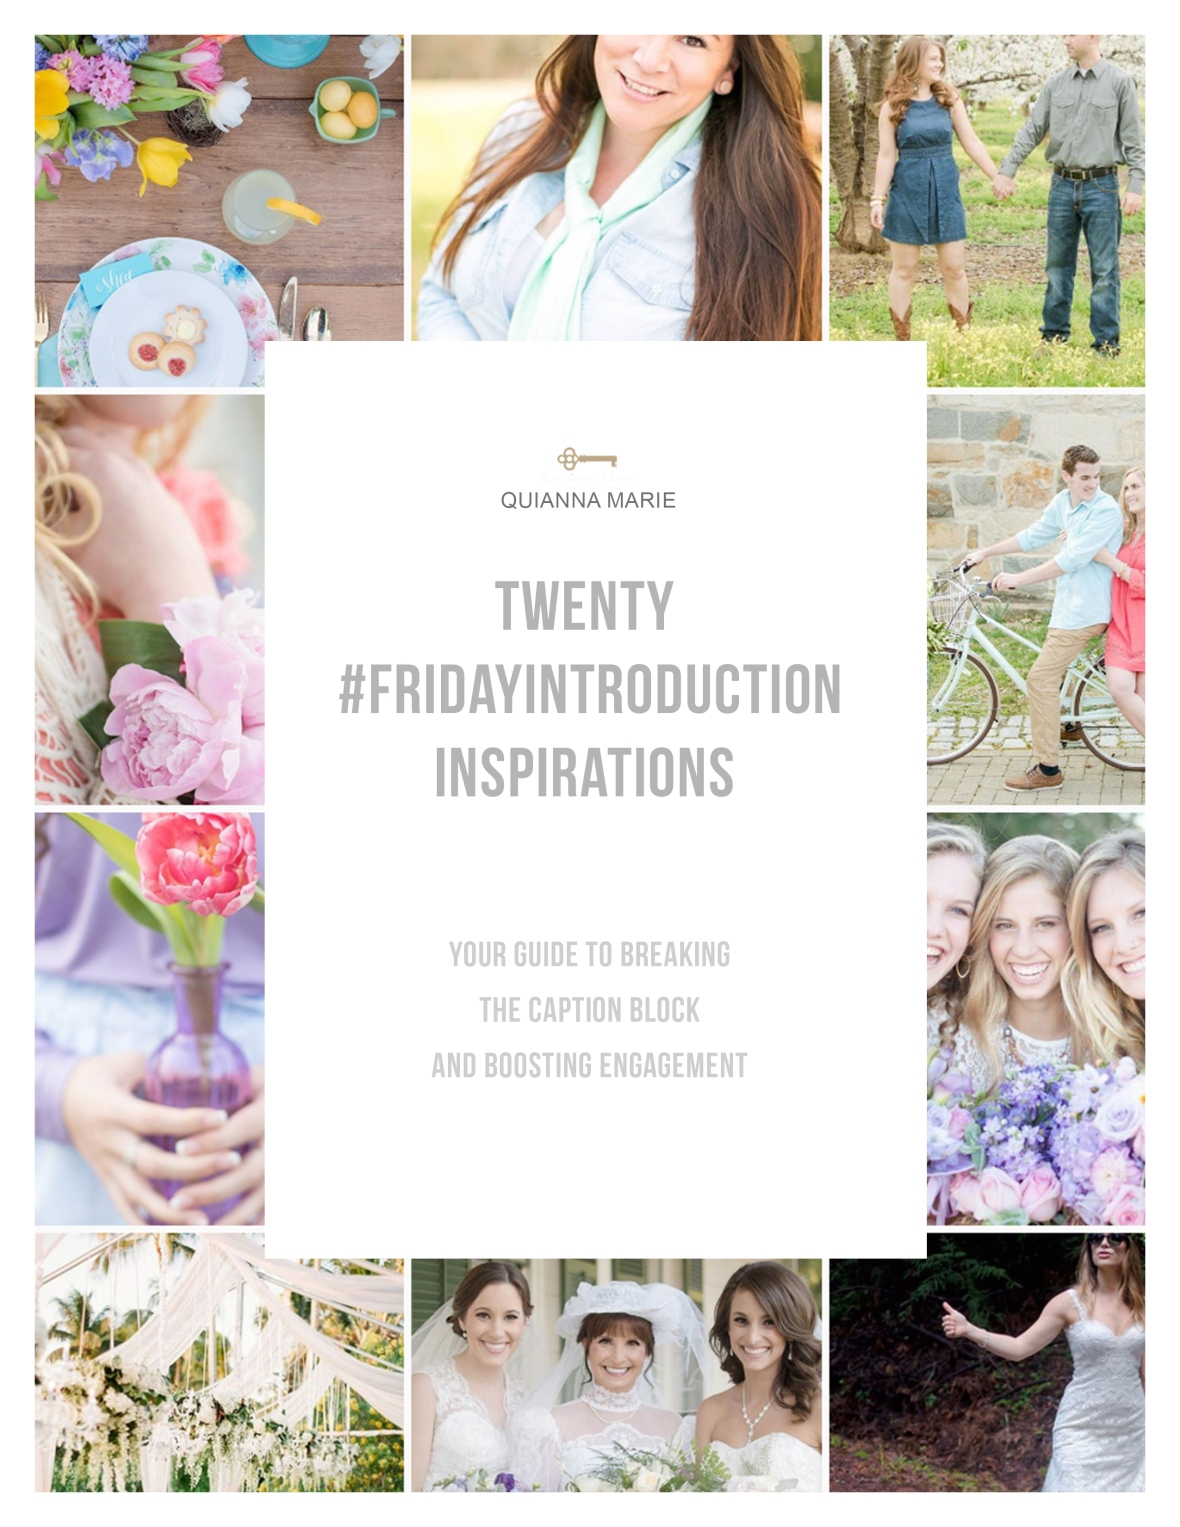 #fridayintroduction COVER